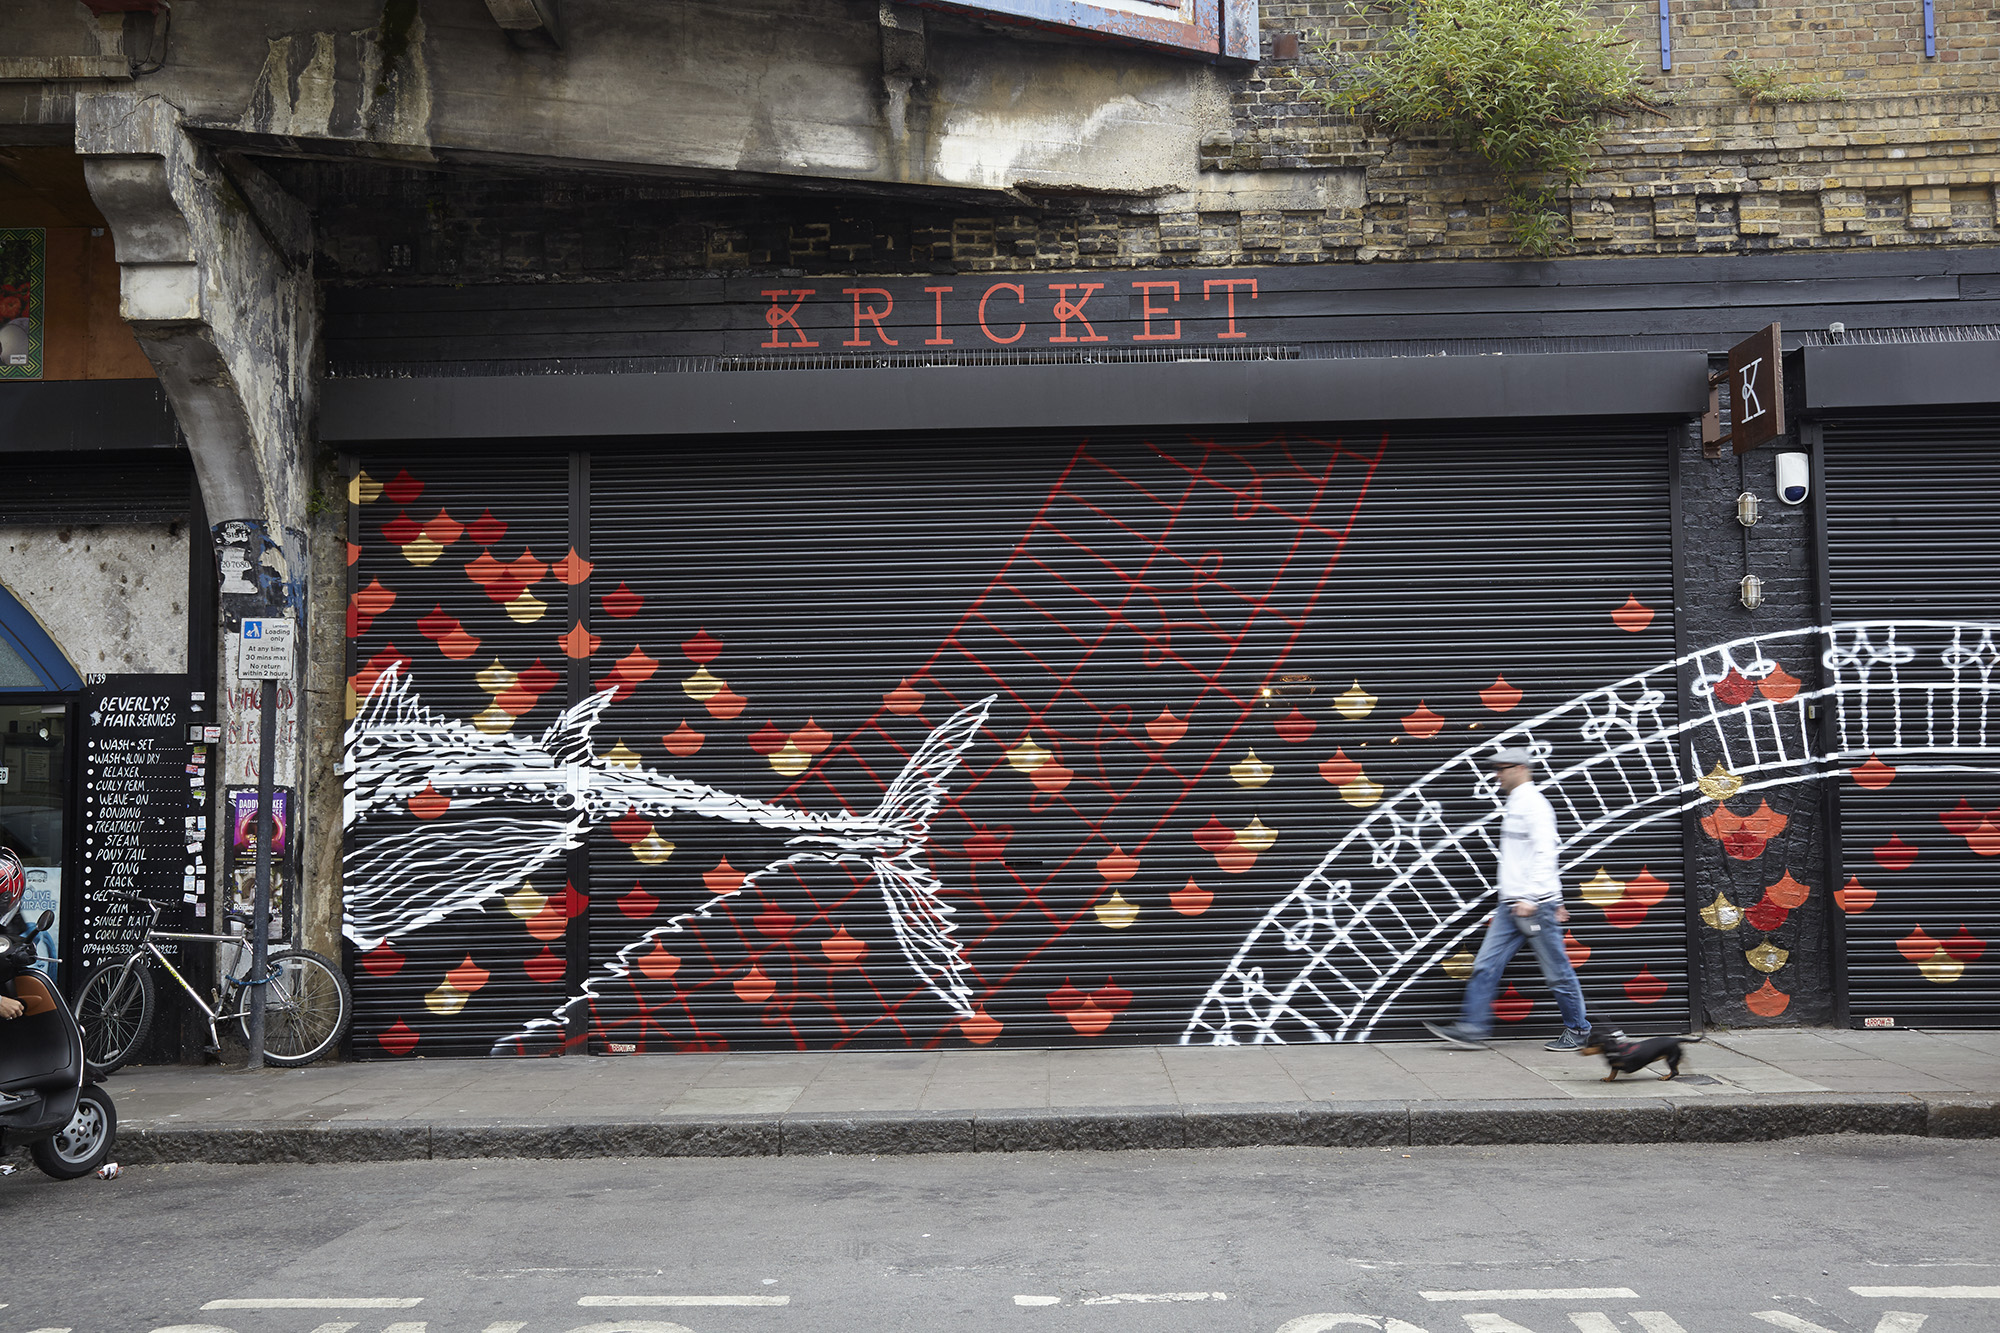 kricket-brixton-london-cool-street-art-restaurant.jpg